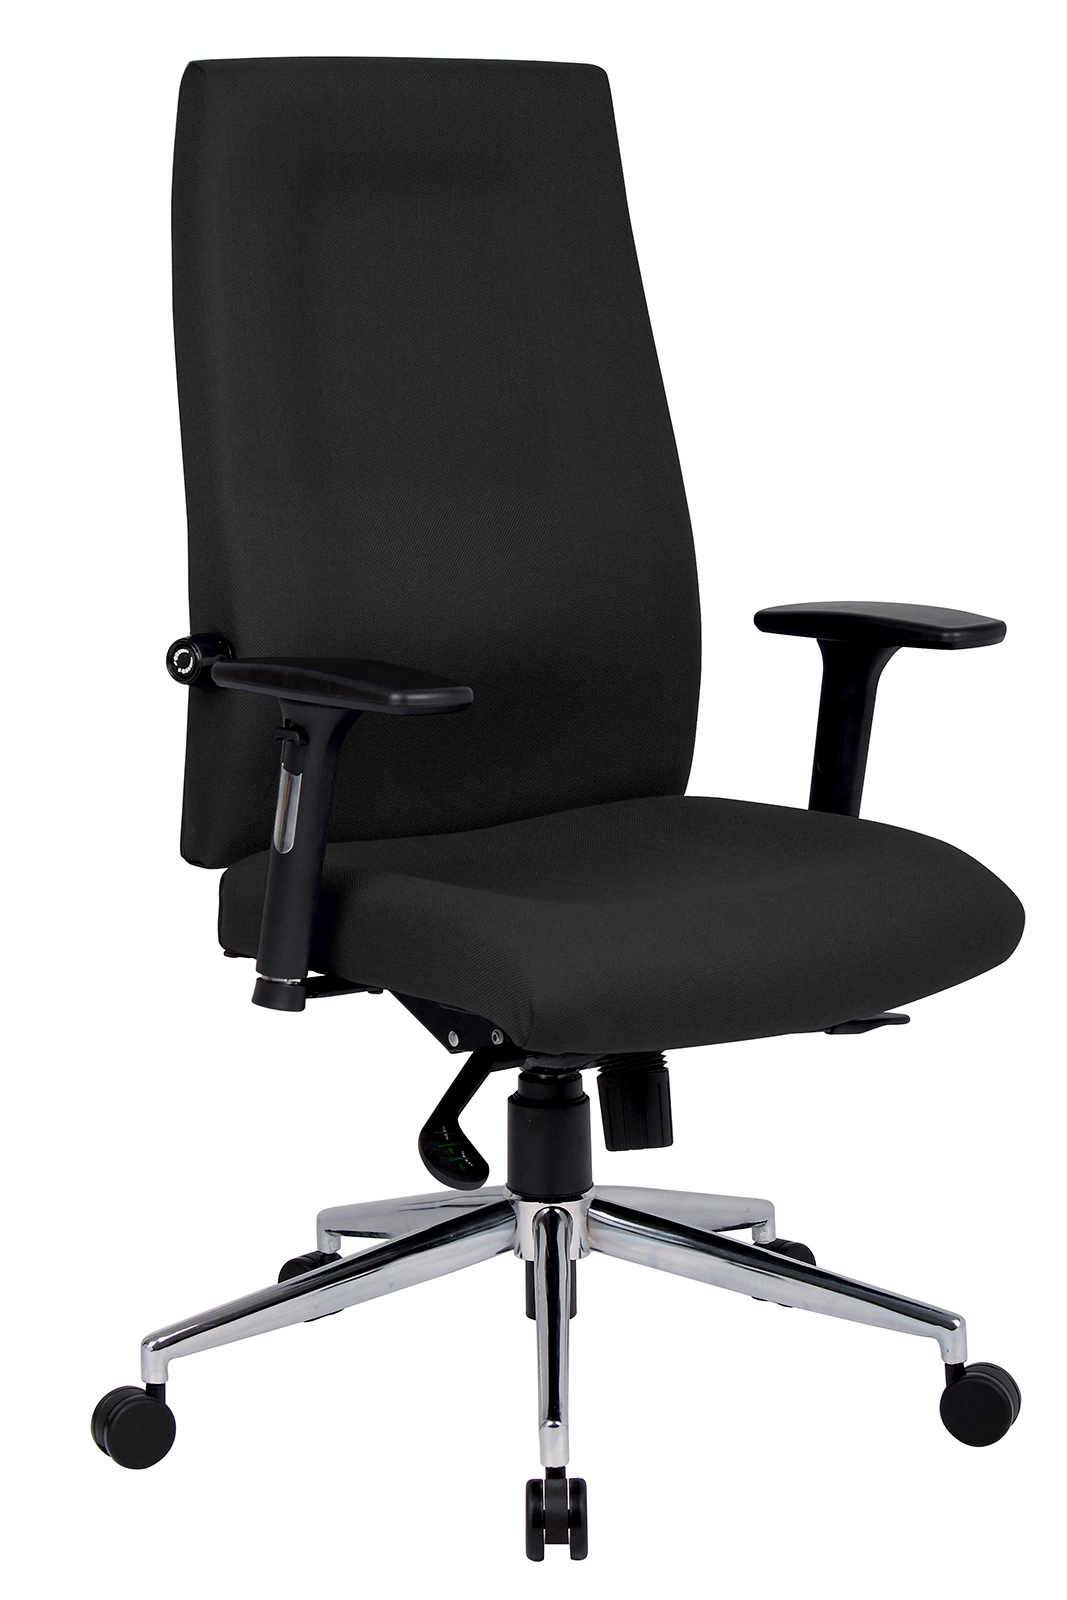 Mode 400 Contract High Back Managr Chair